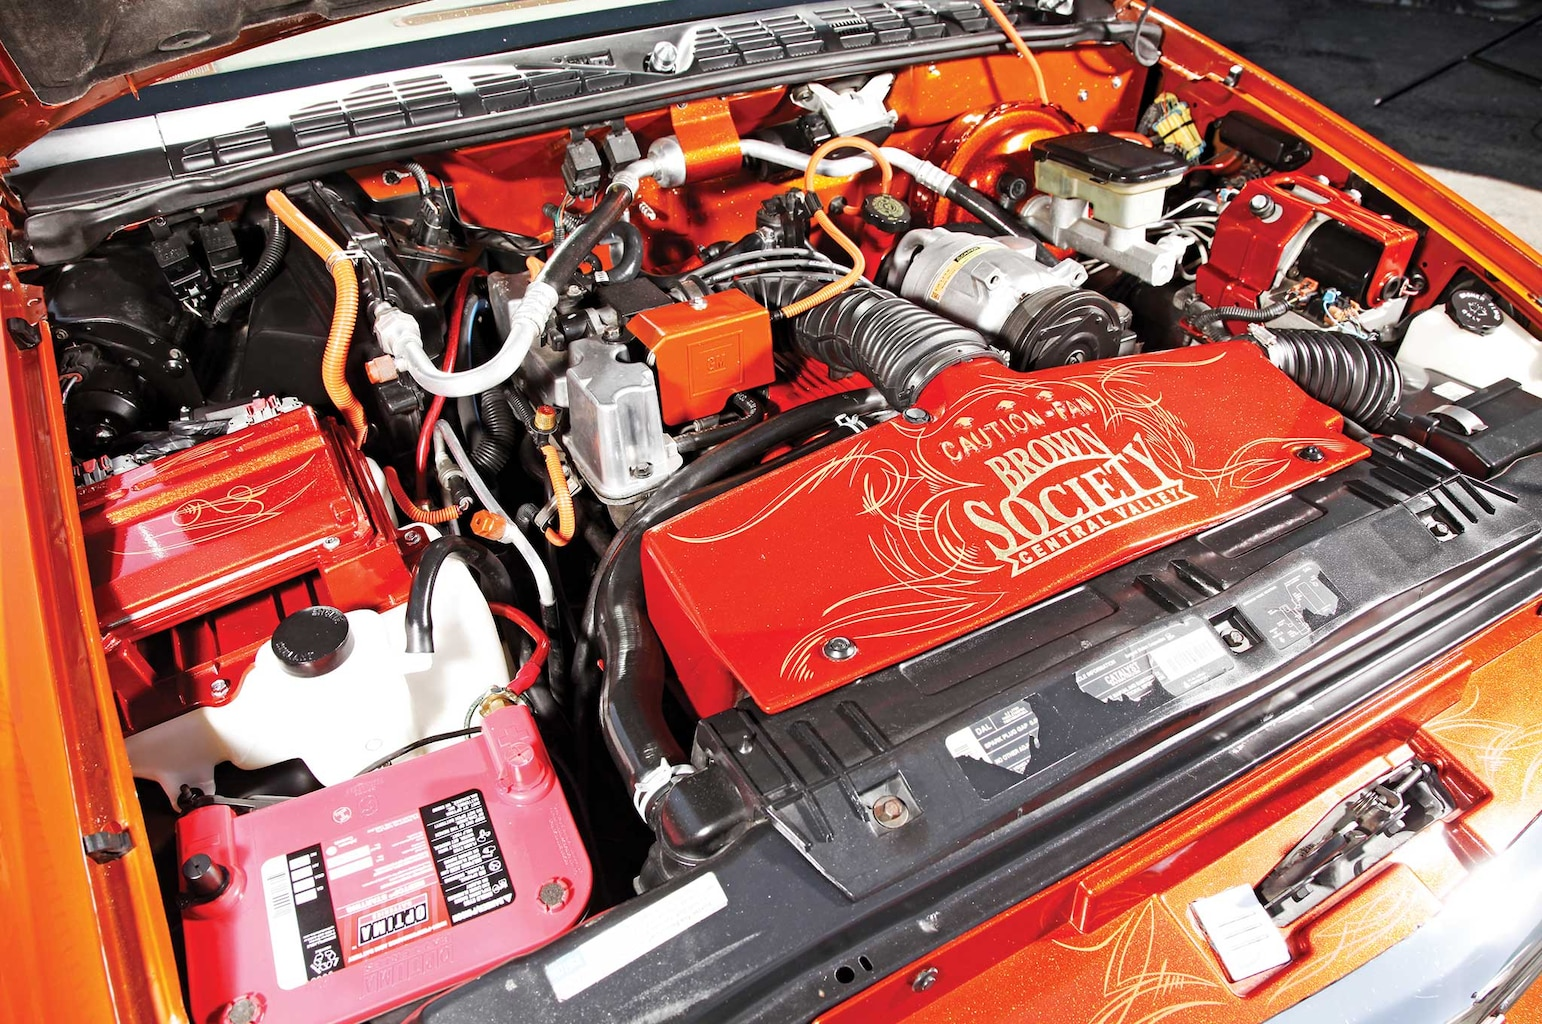 007 1996 chevy s10 four cyclinder engine